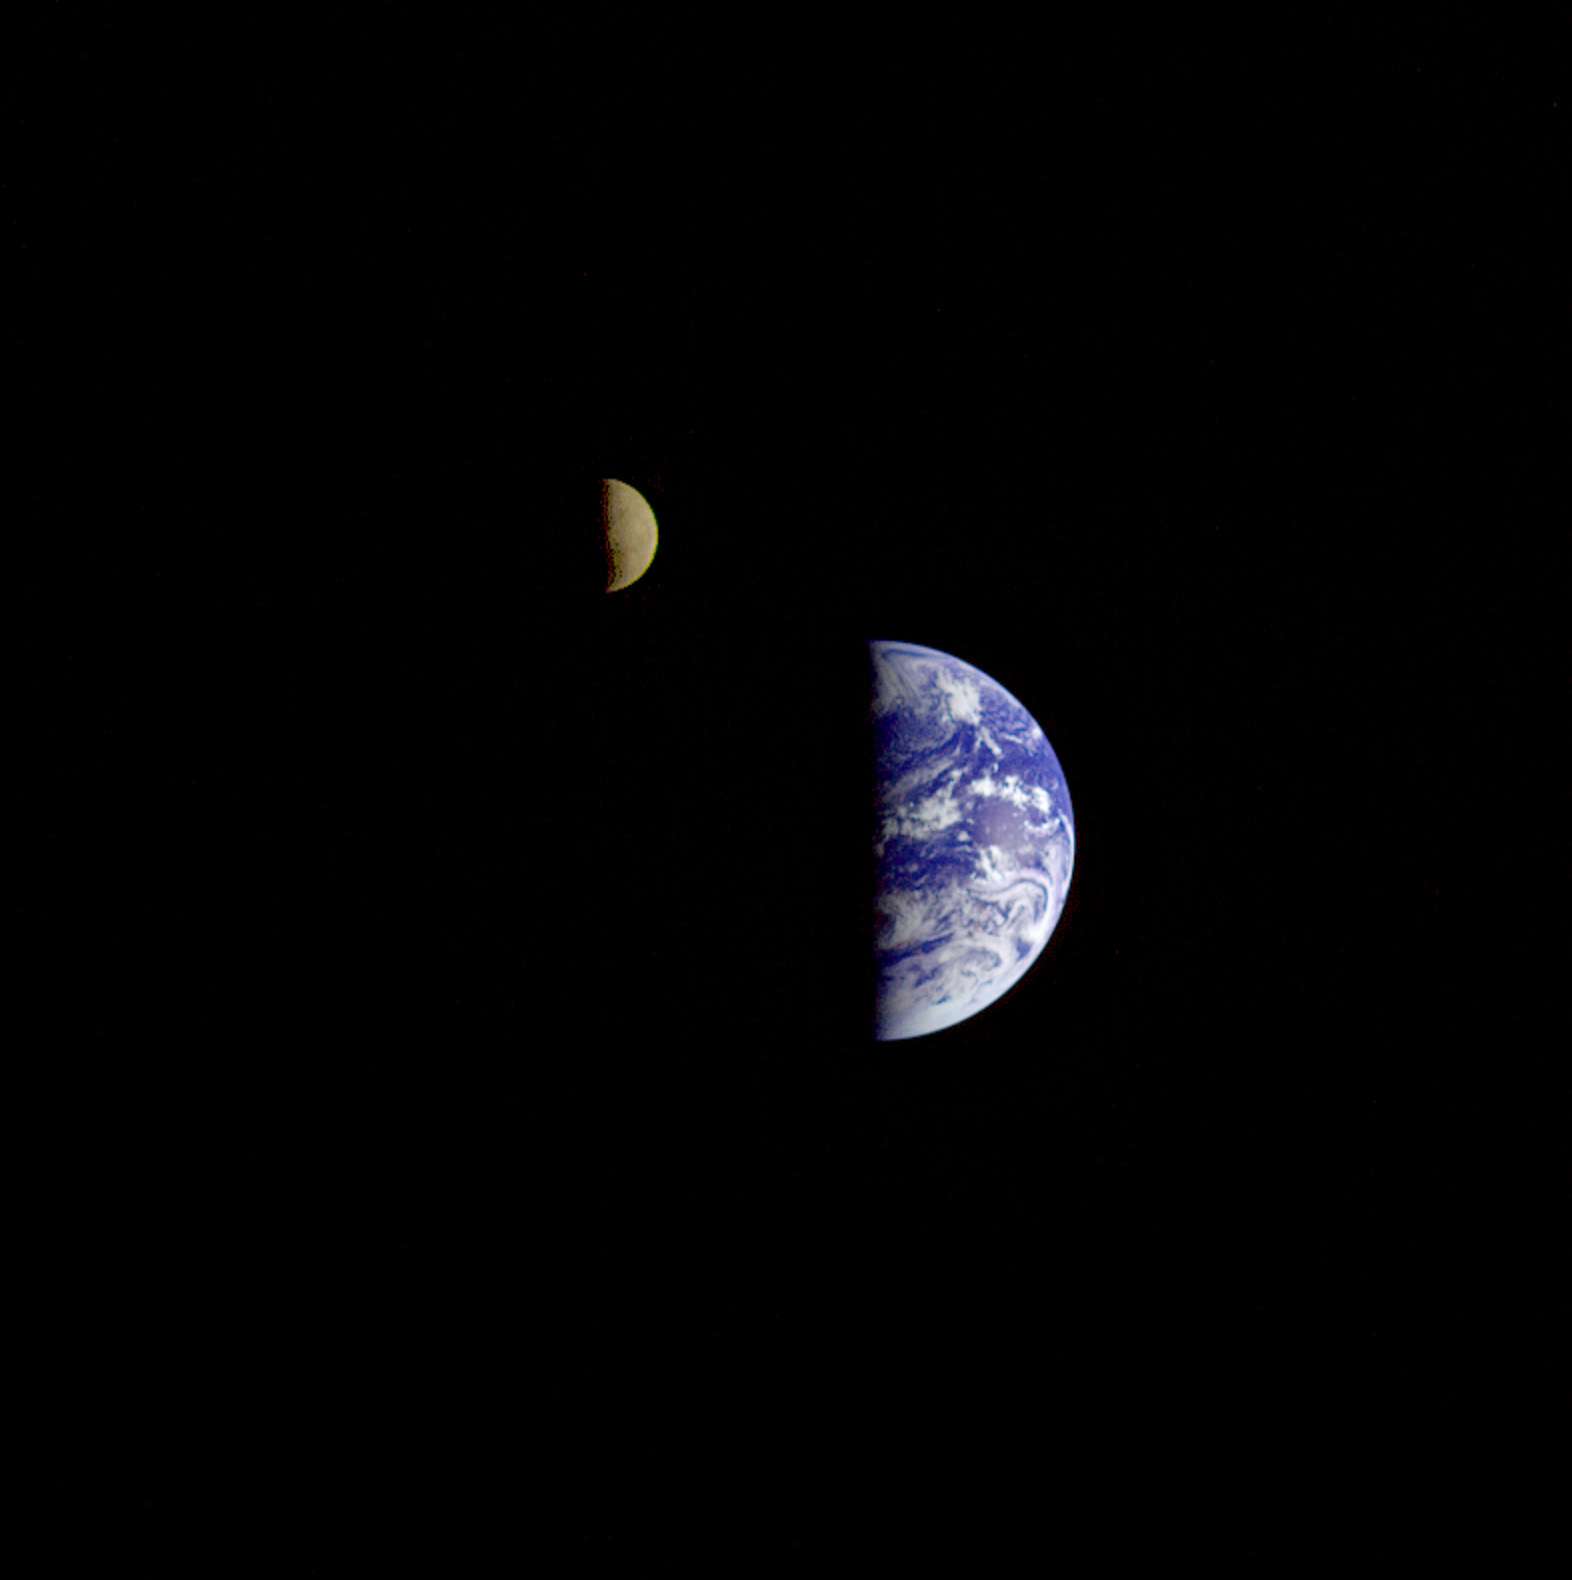 Earth and Moon from Voyager's Perspective